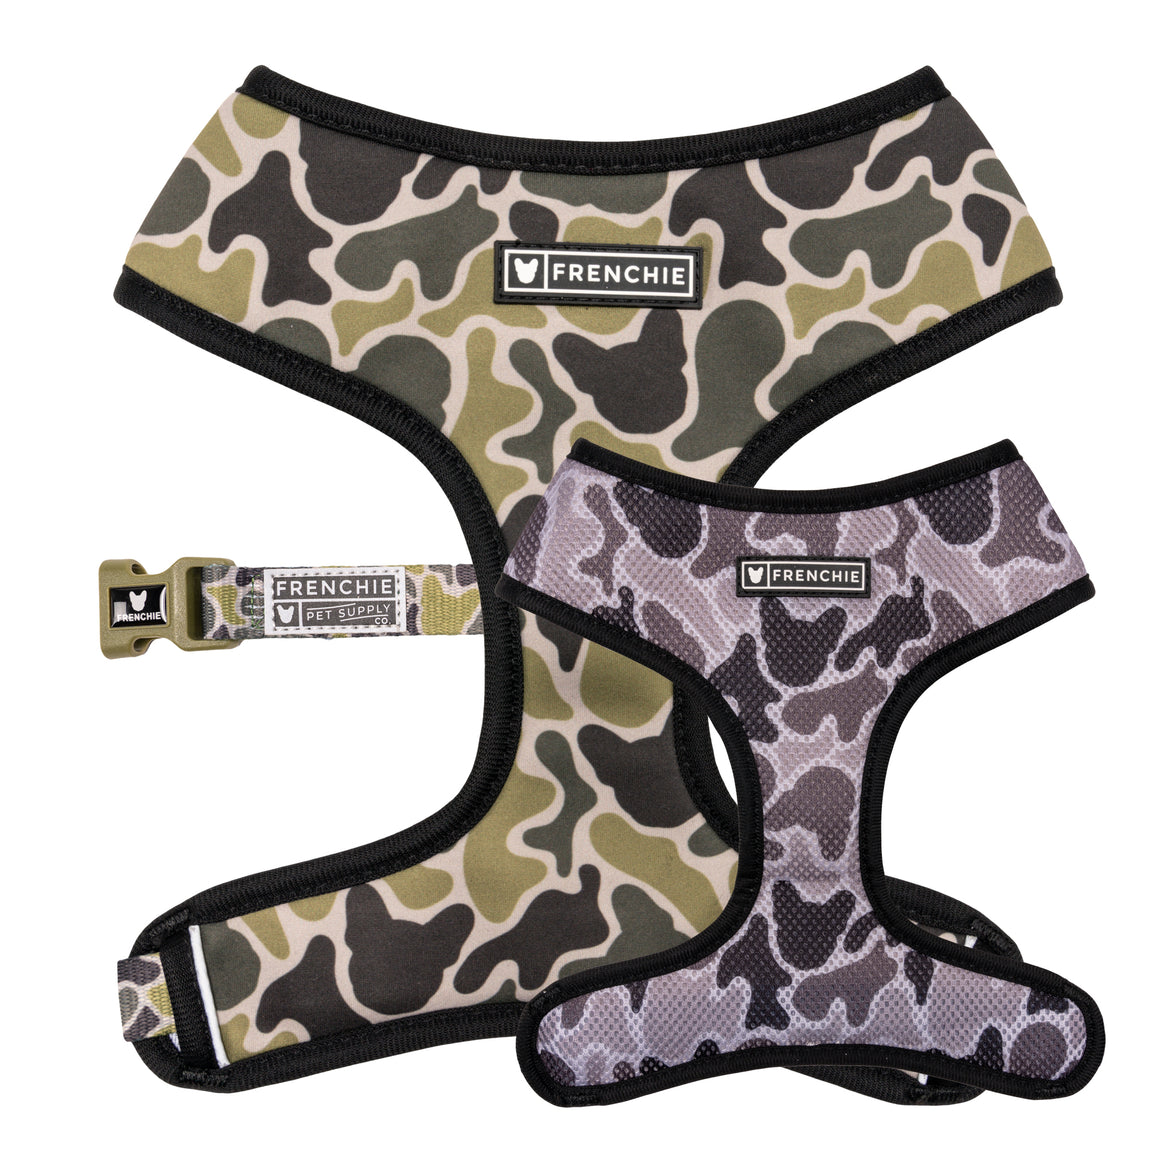 Frenchie Duo Reversible Harness - Green Frenchie Camo